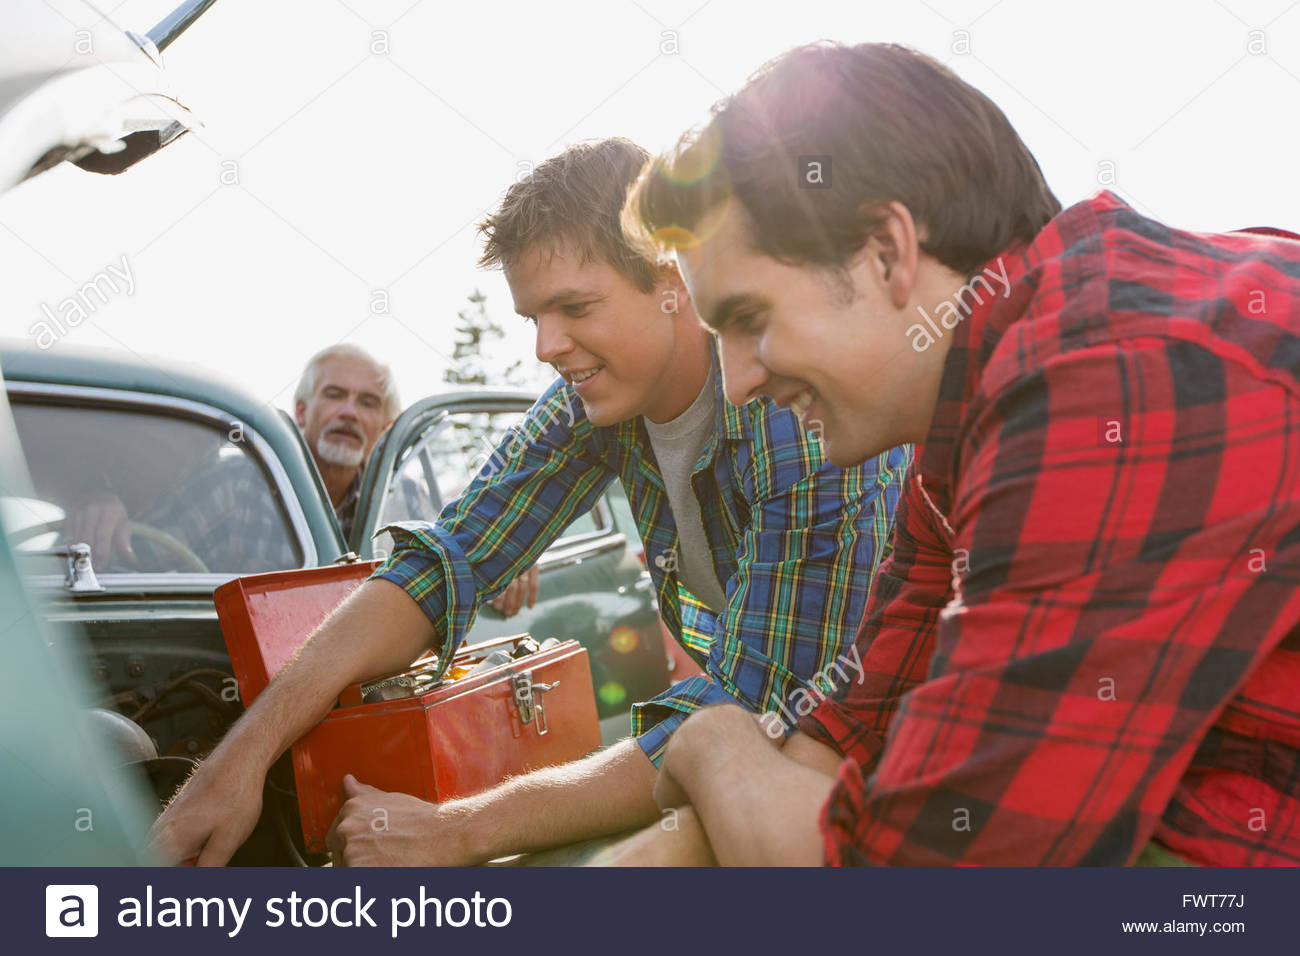 Brothers helping father to repair old car. - Stock Image